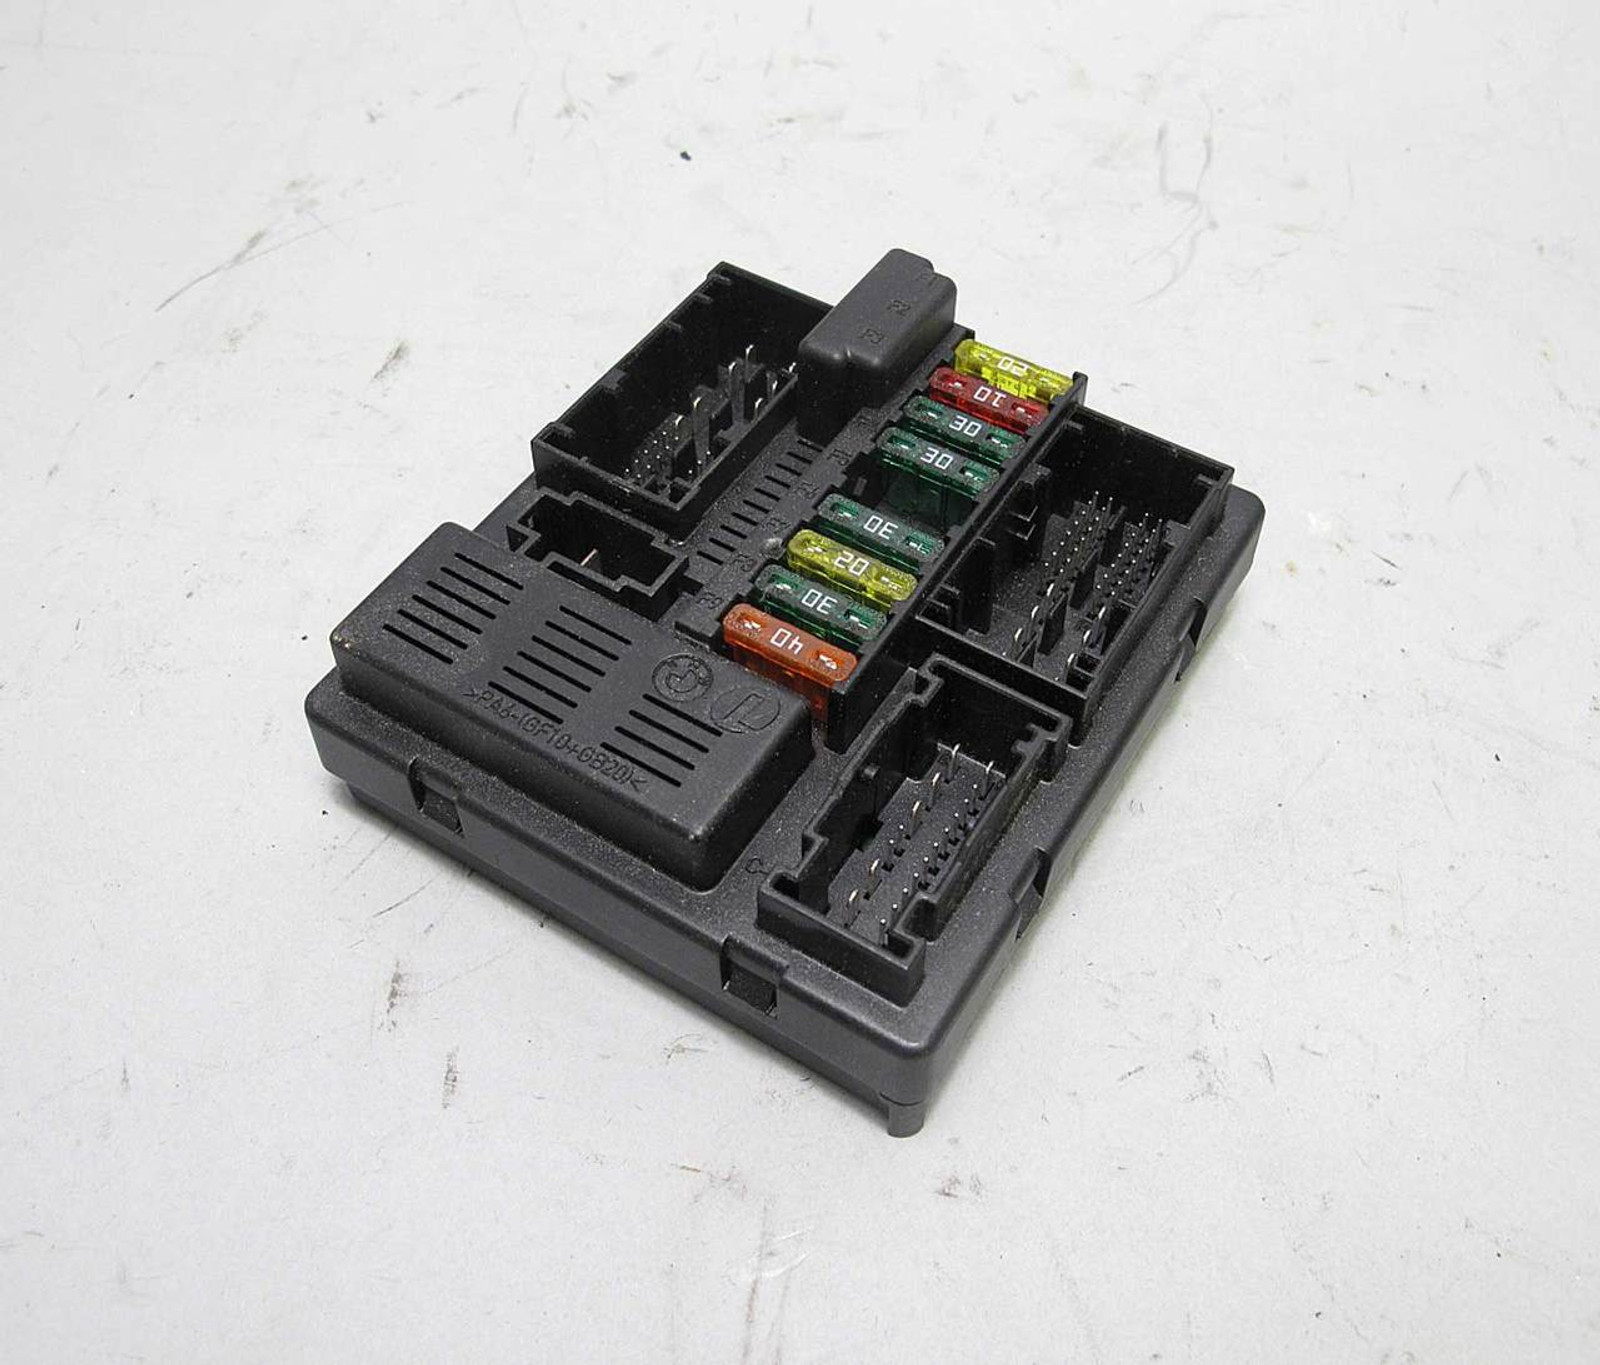 Bmw Z4 X3 3 0i Under Hood Fuse Box Electrical Distribution